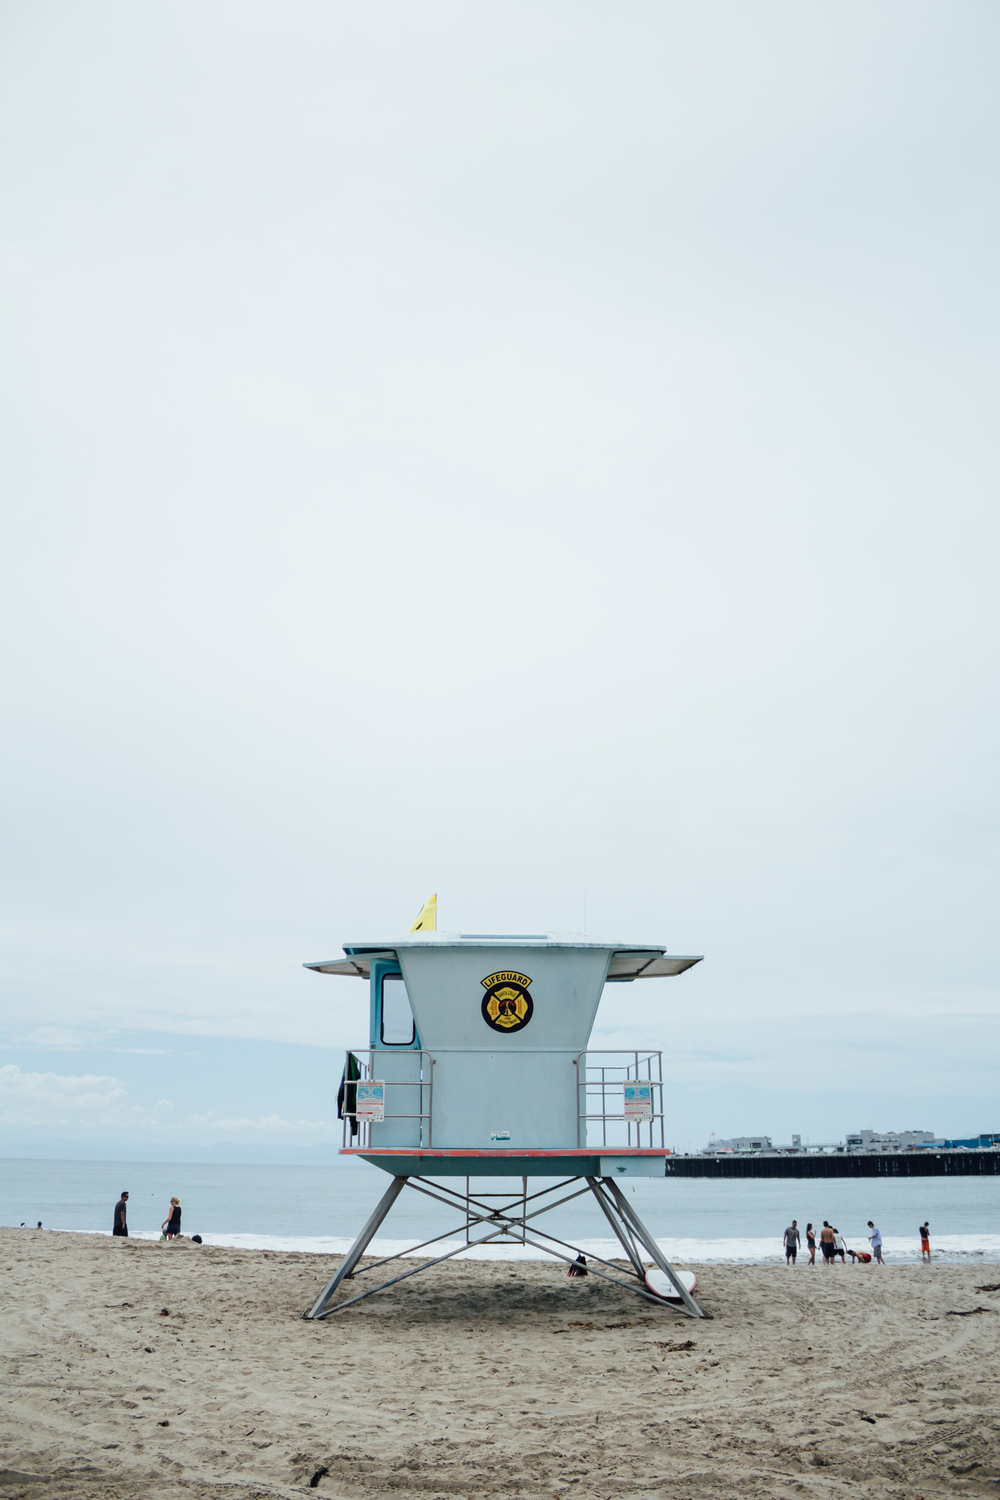 Lifeguard Stand by Catherine Alyce